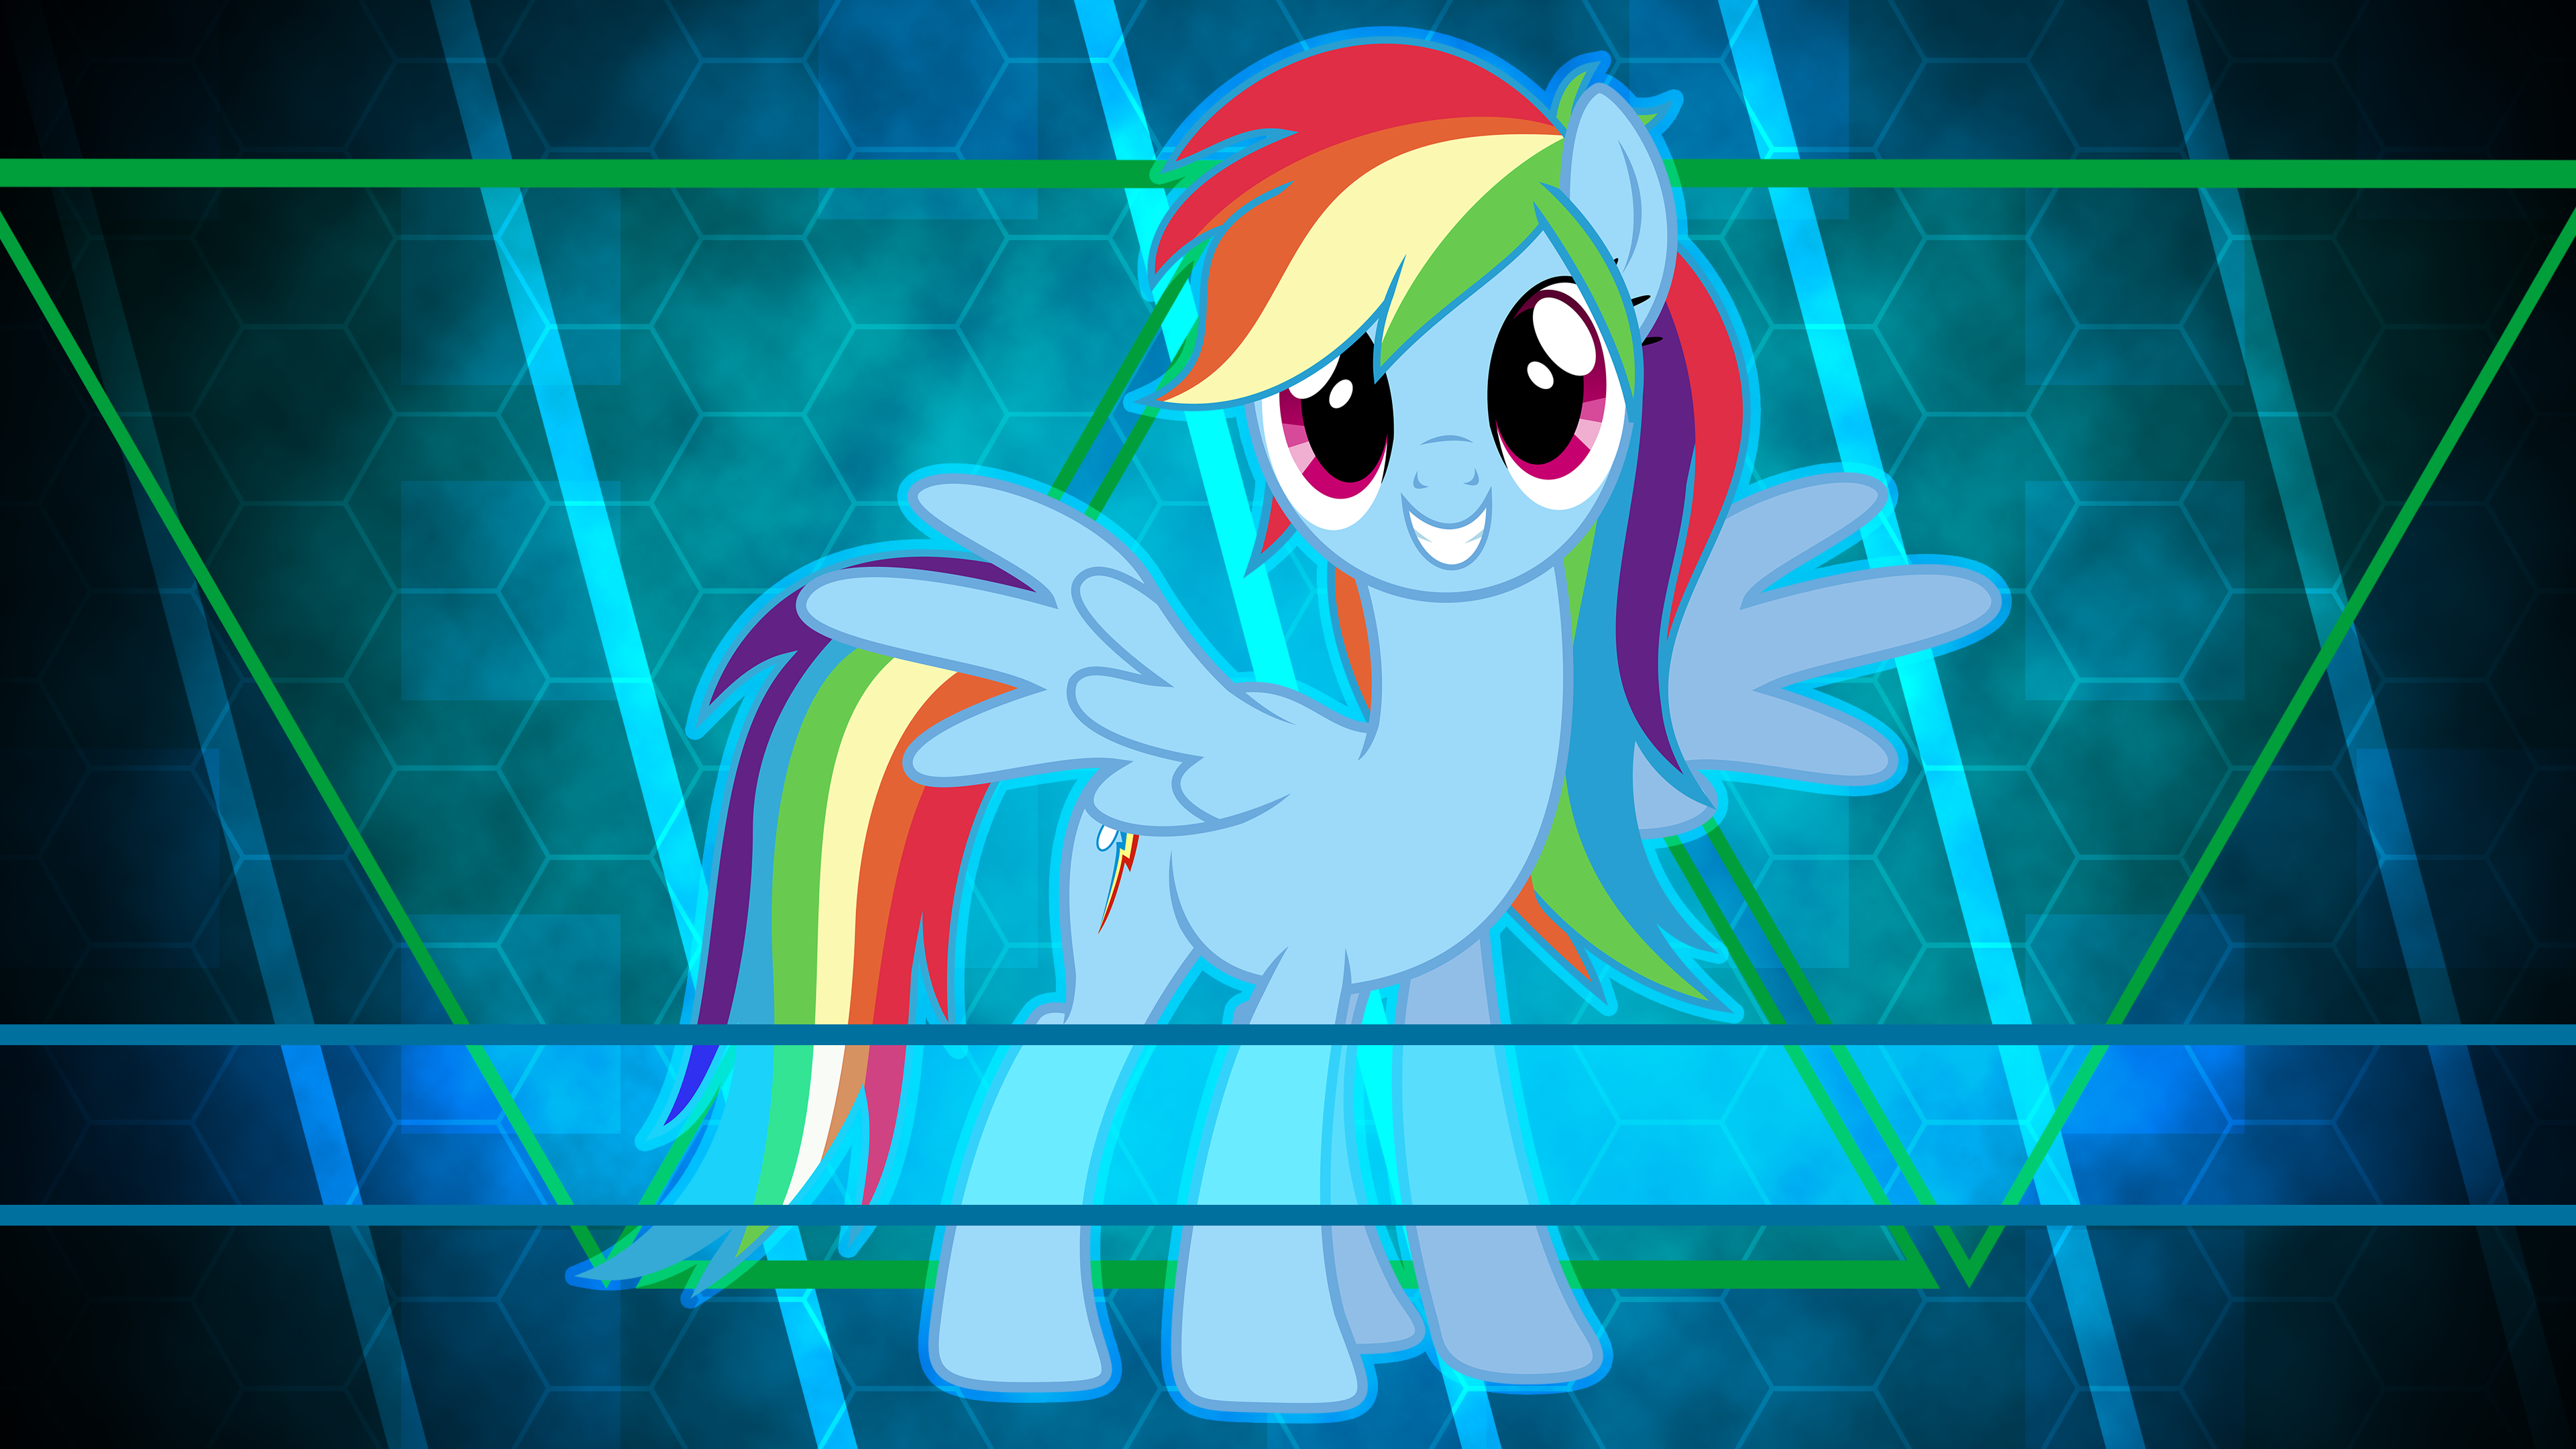 Rainbow Dash always brushes in style by Laszl